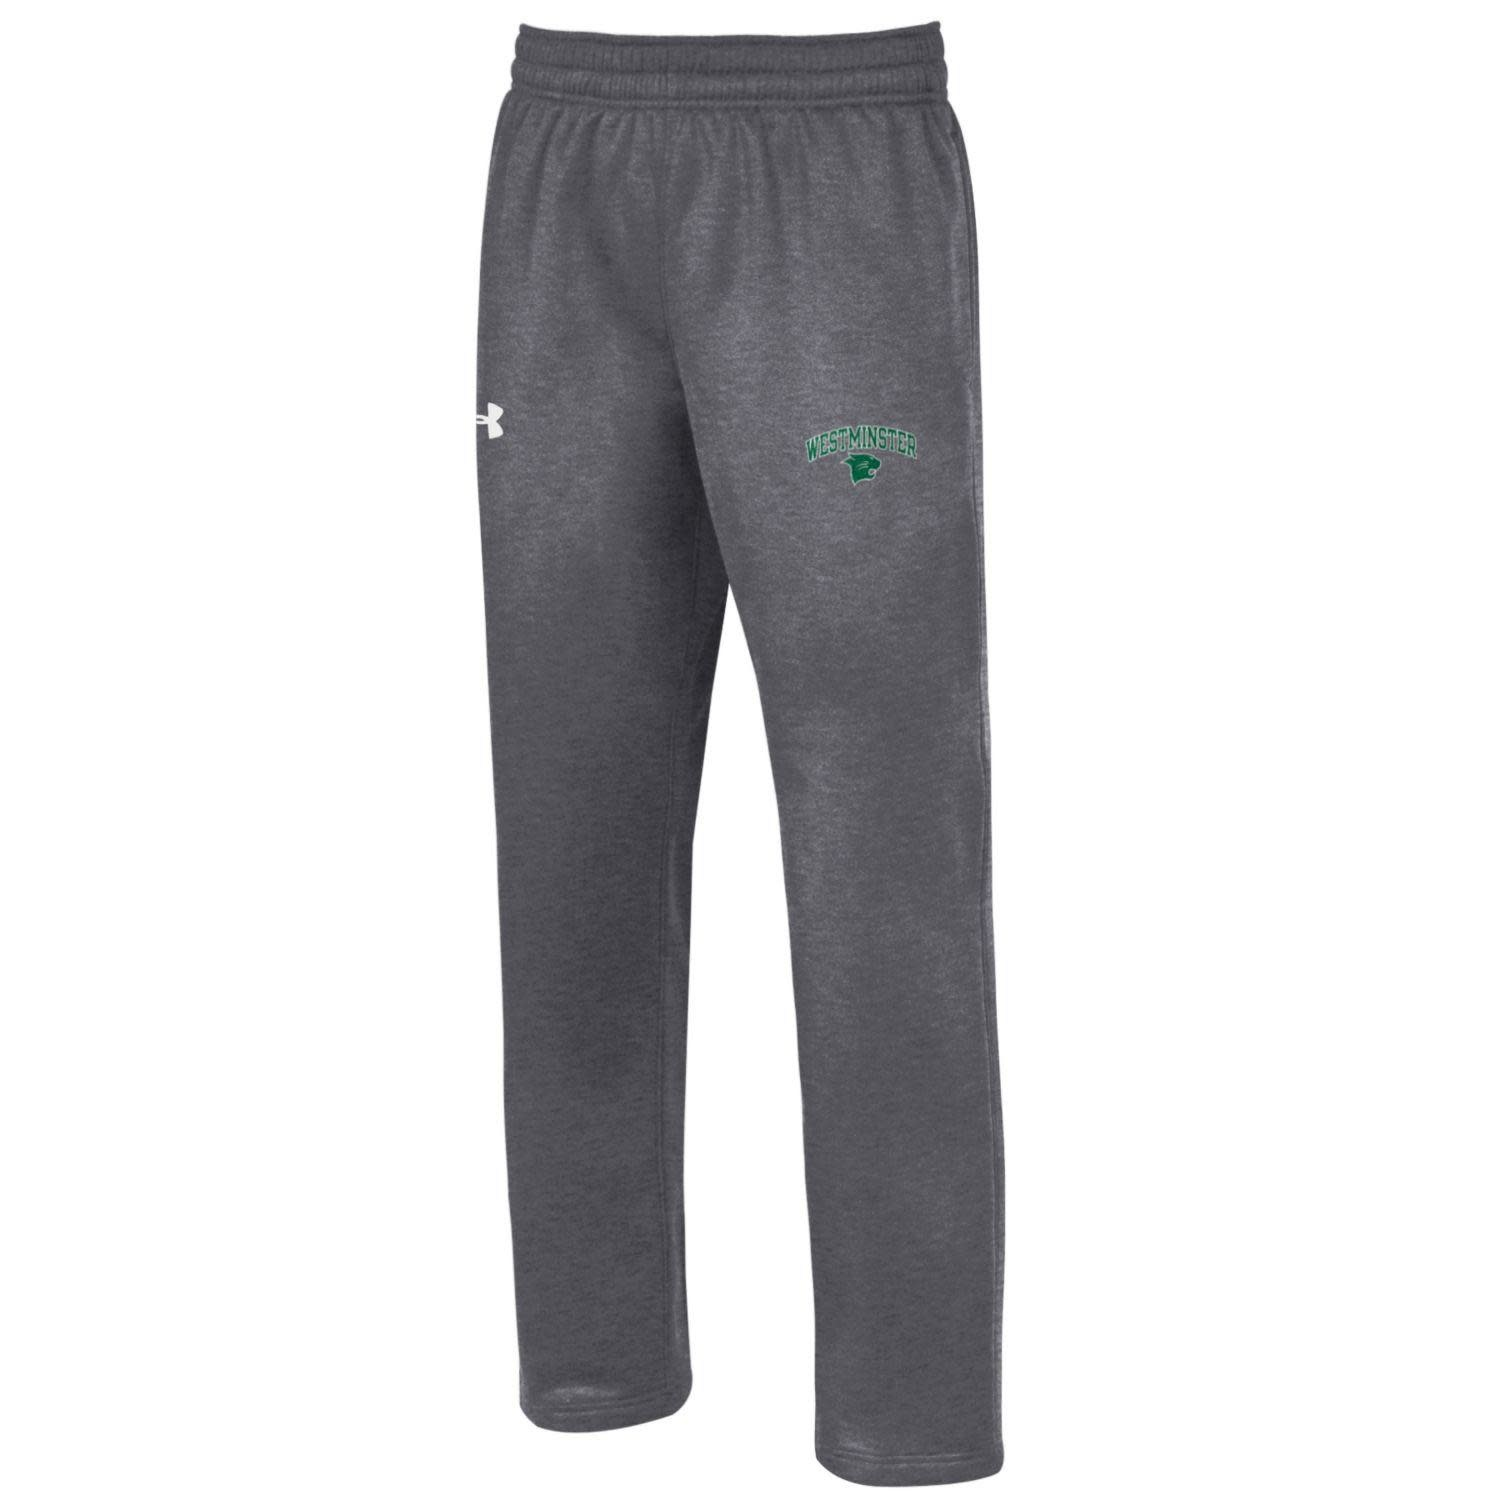 Under Armour Sweatpants: UA Carbon Heather Storm Westminster over Wildcat